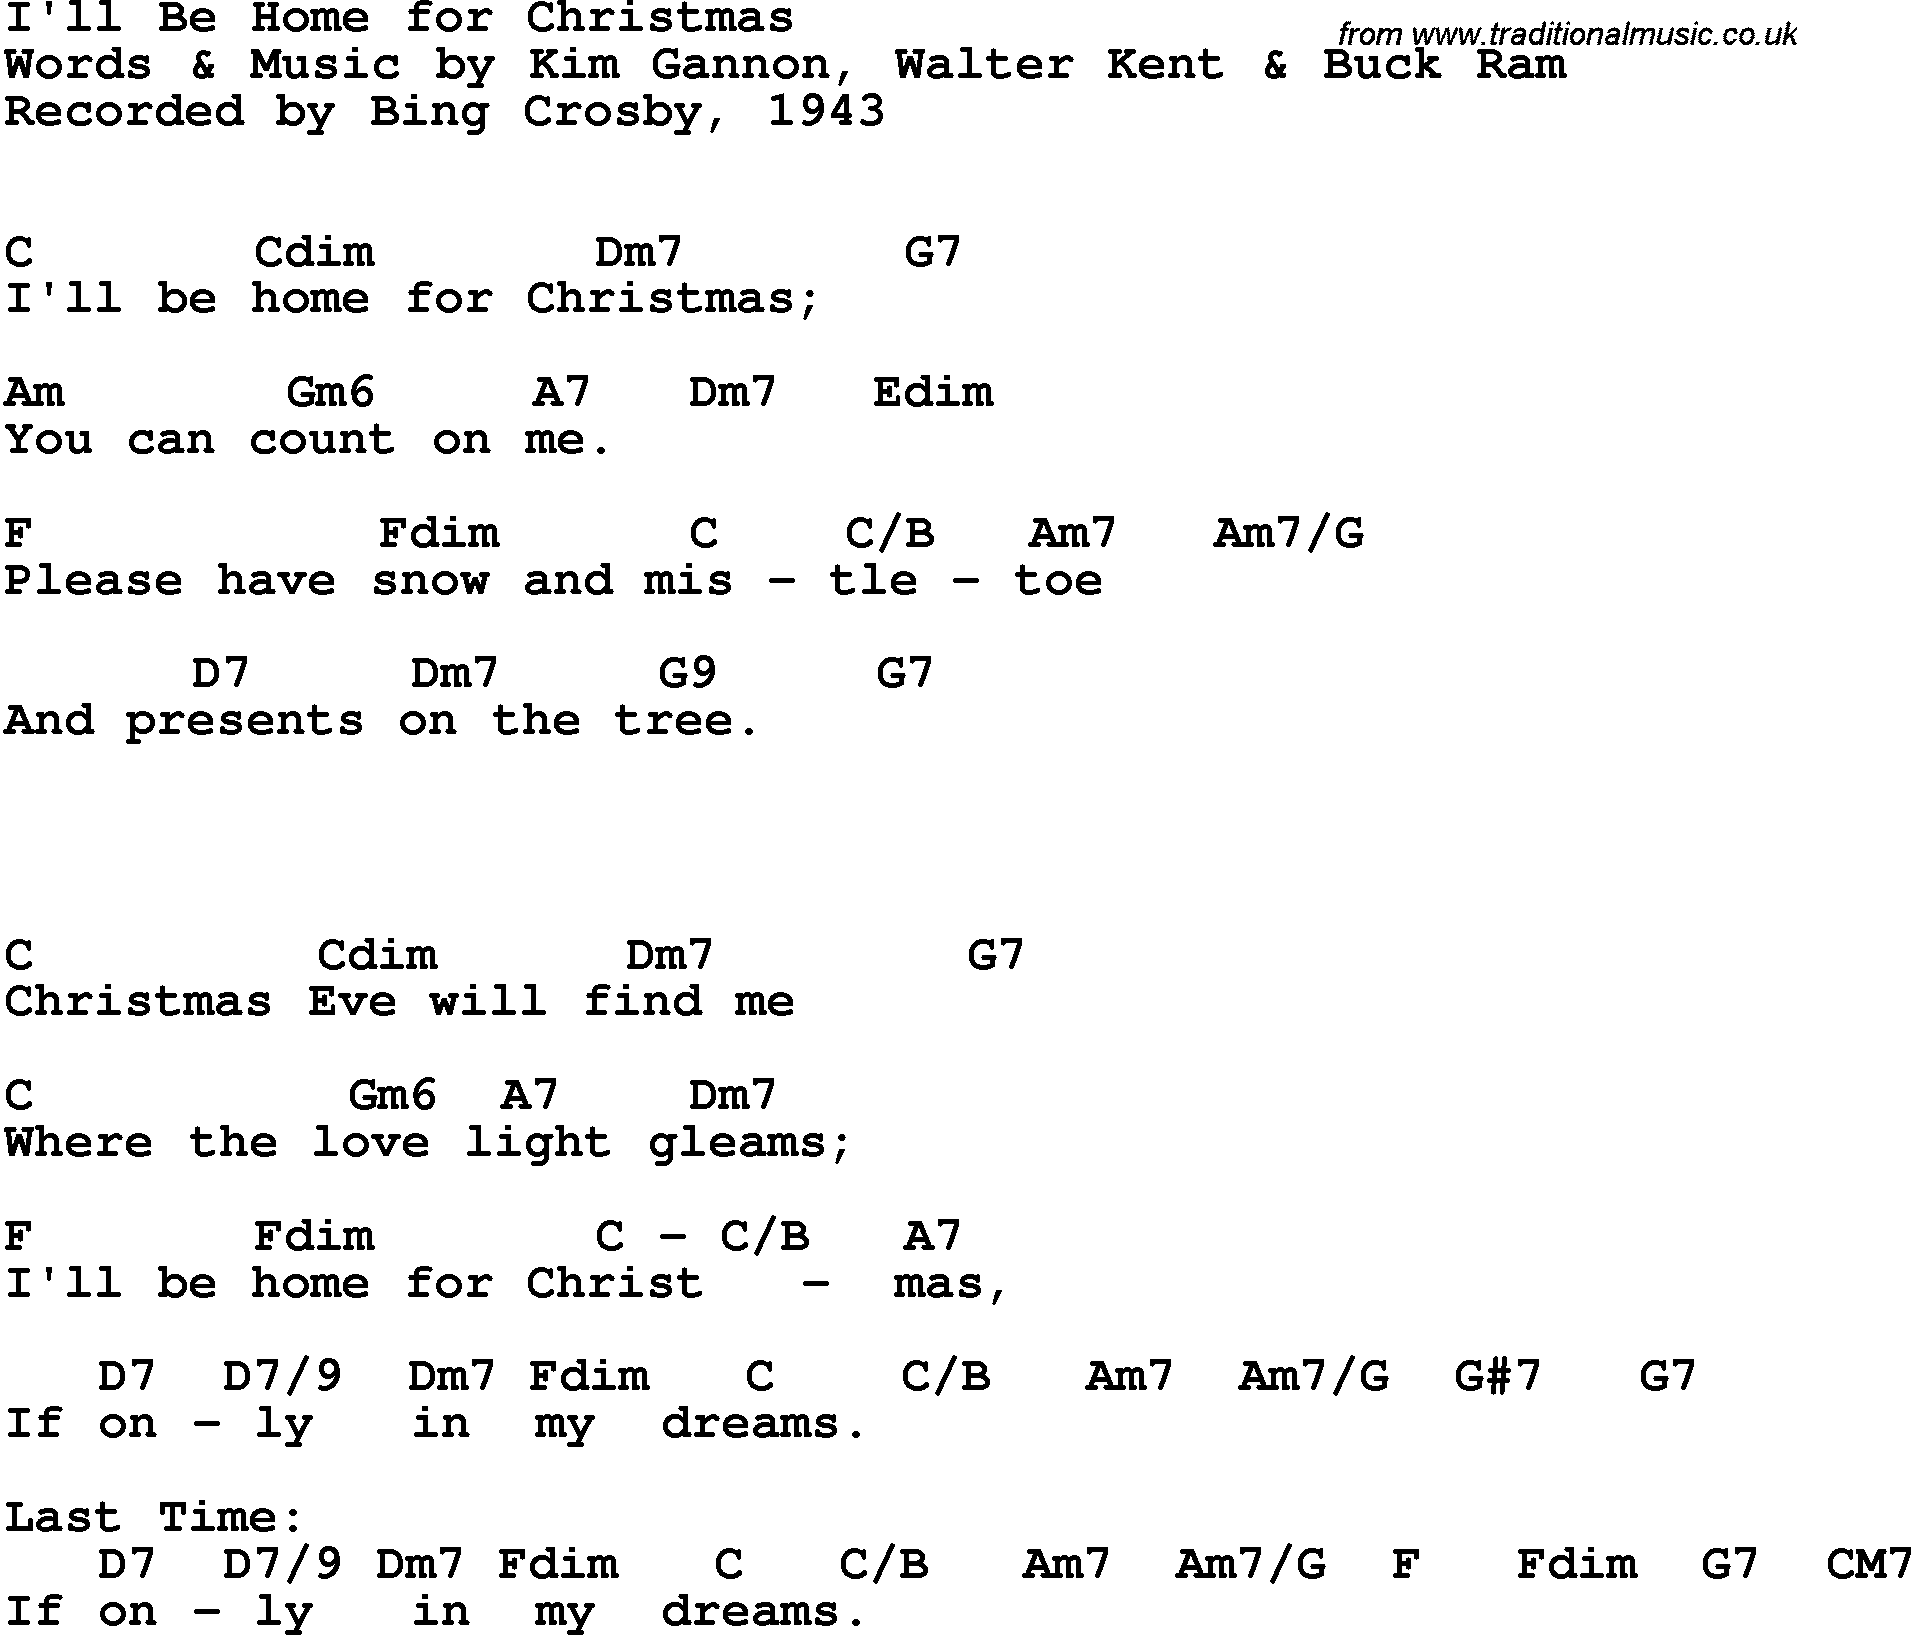 Ill Be Home For Christmas Chords.Song Lyrics With Guitar Chords For I Ll Be Home For